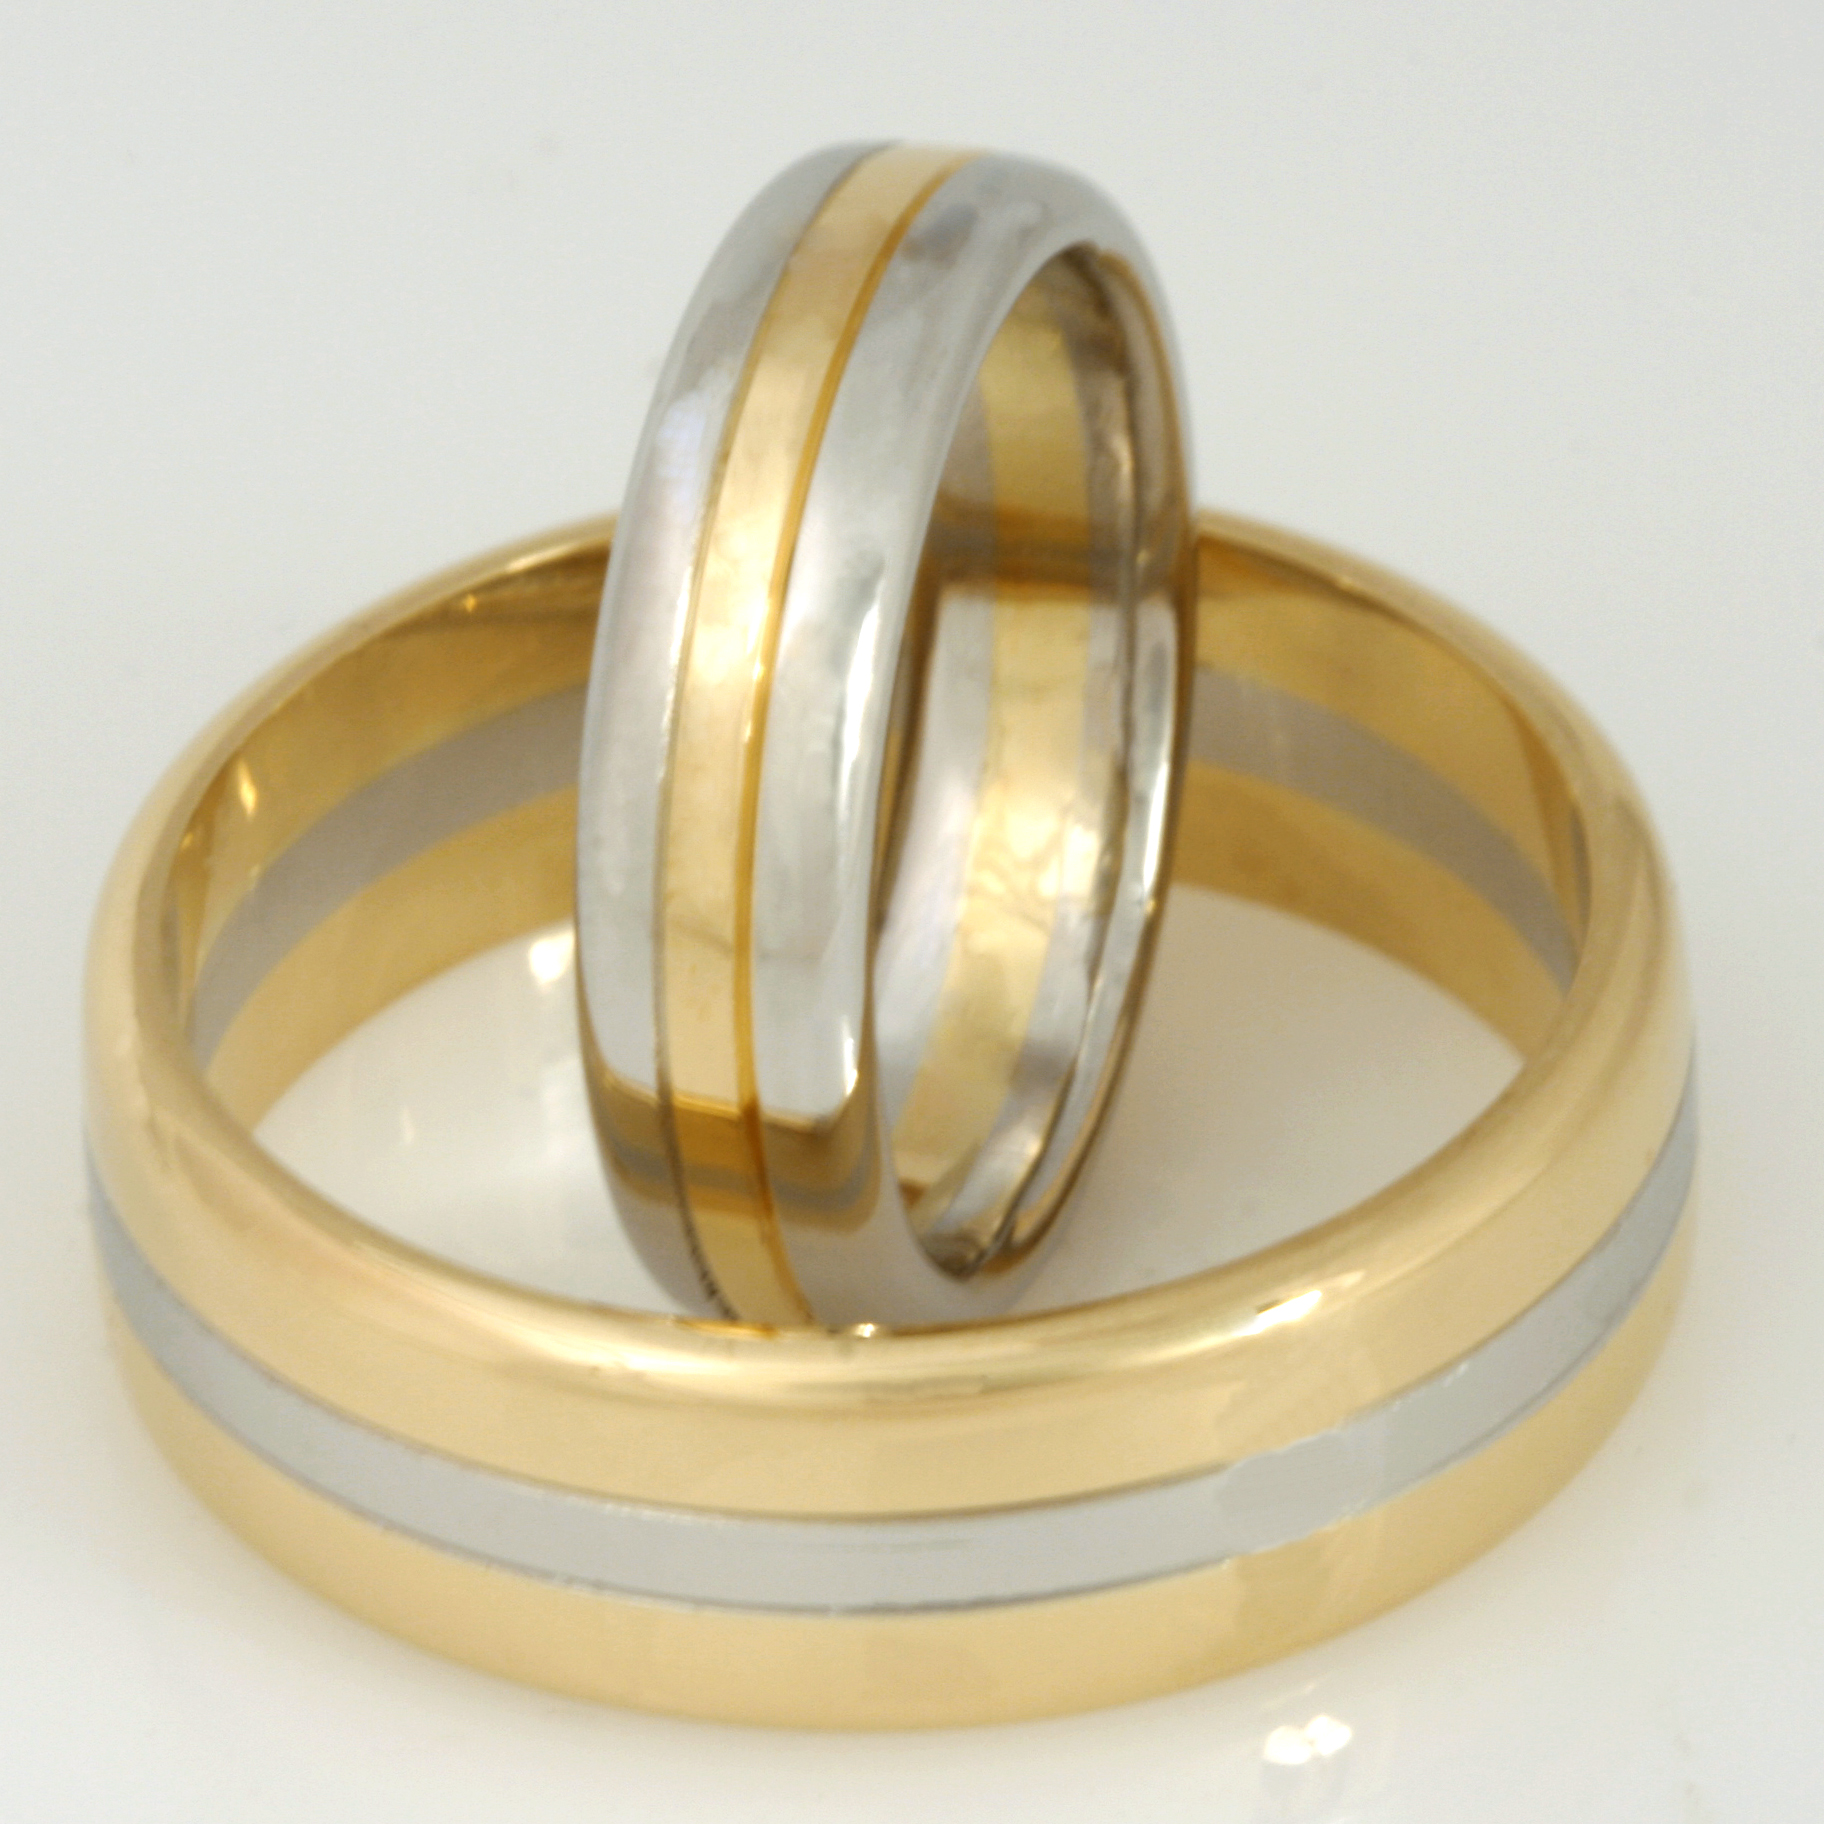 Handmade gents and ladies platinum and 18ct yellow gold wedding rings